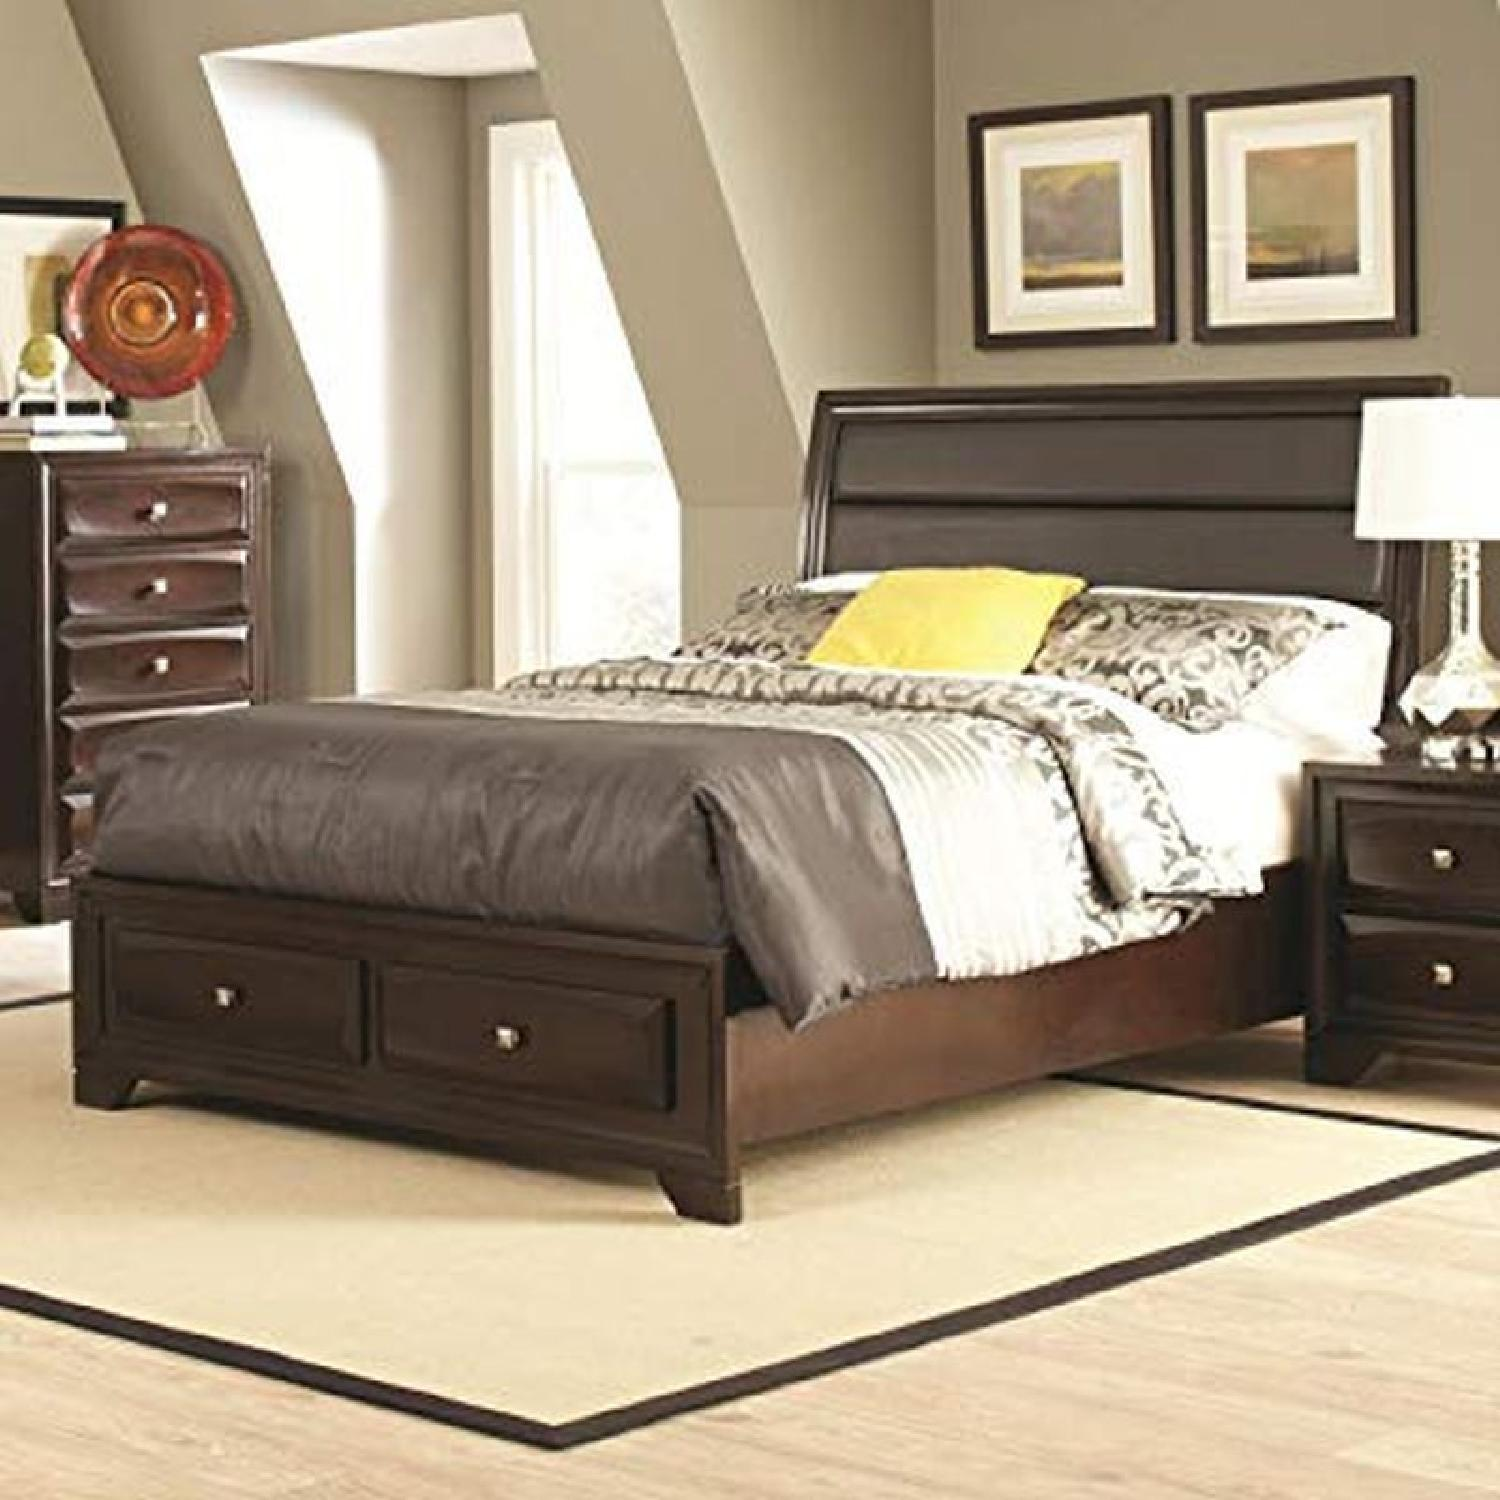 Queen Platform Bed w/ Drawers & Leatherette Headboard - image-2